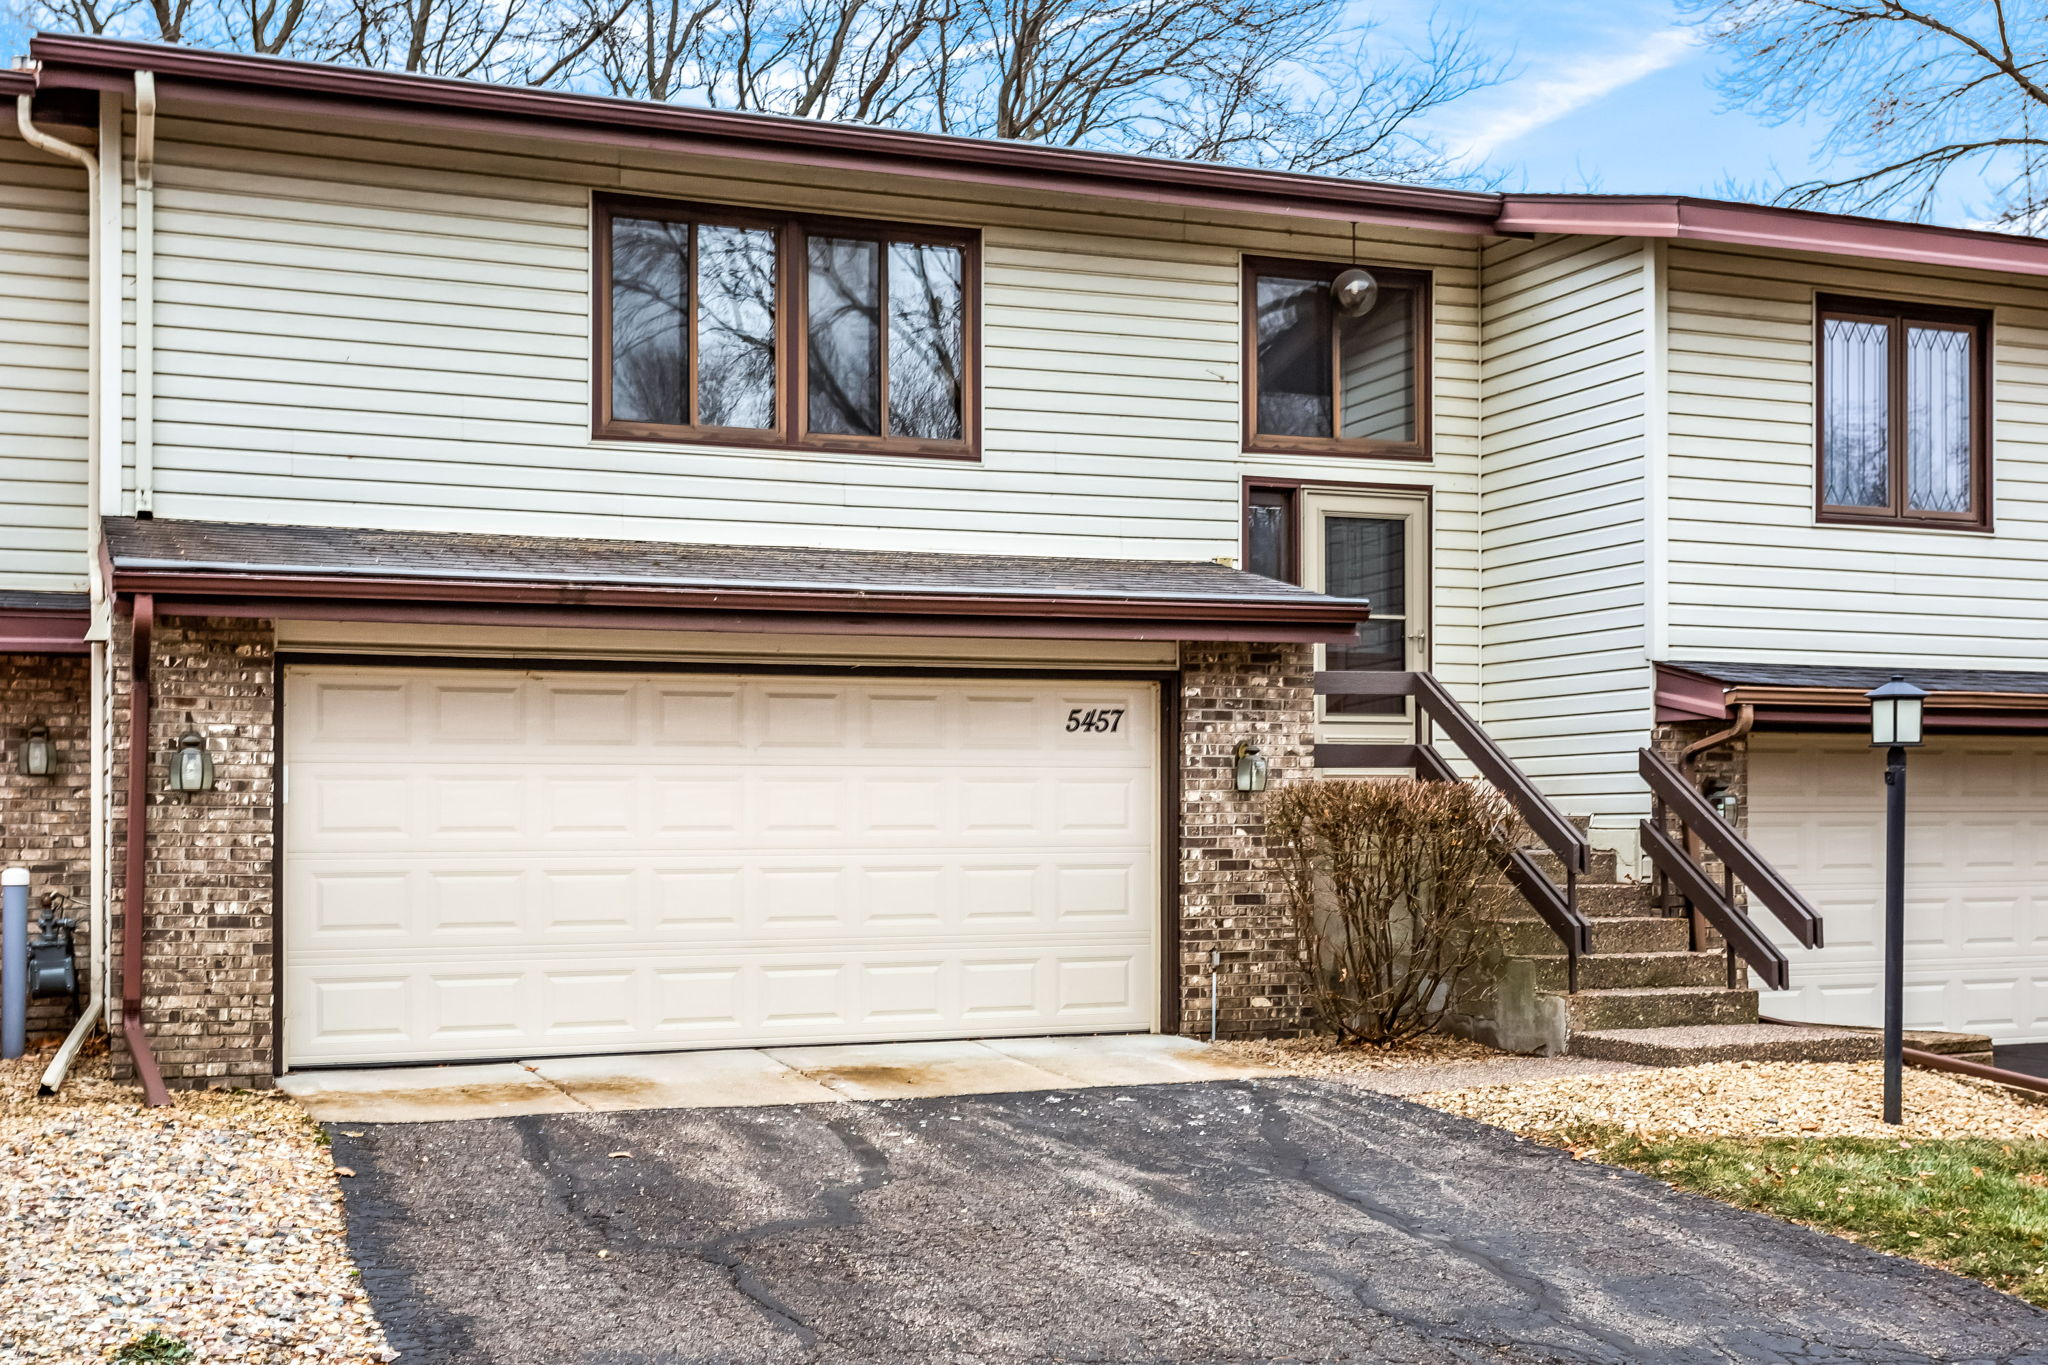 5457 Hyland Courts Dr, Minneapolis, MN 55437, US